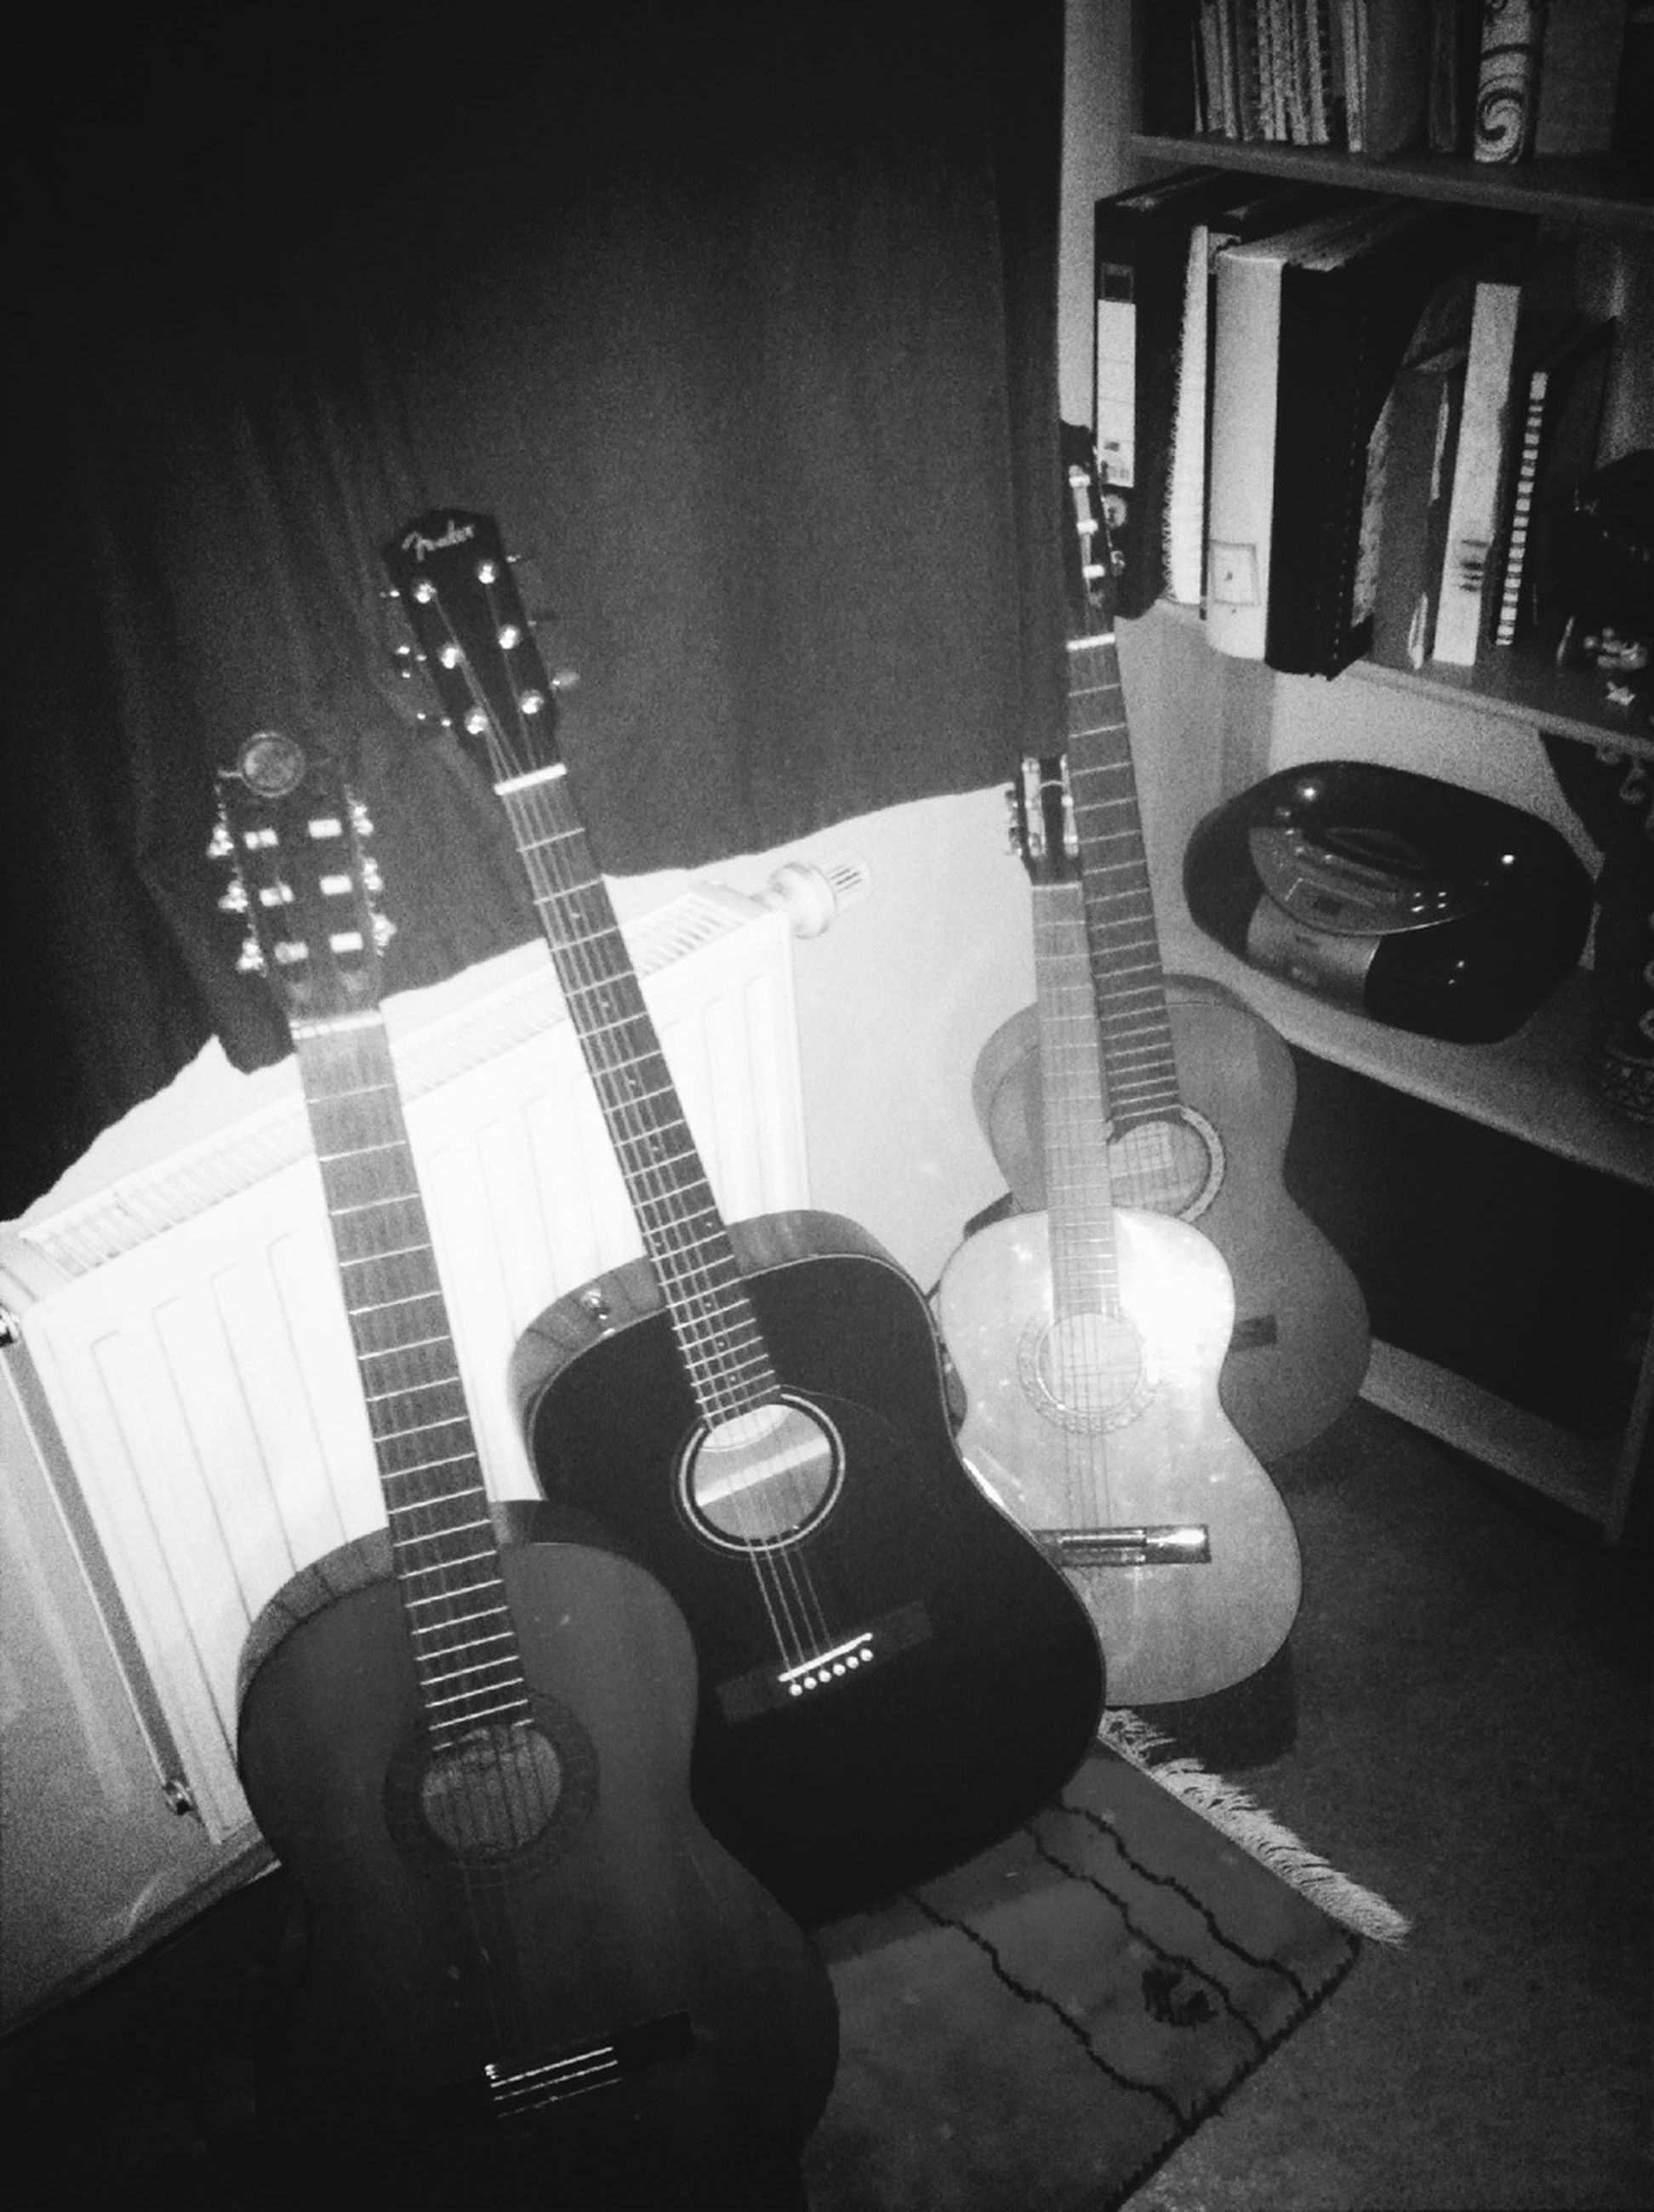 indoors, music, musical instrument, arts culture and entertainment, guitar, musical equipment, table, chair, still life, musical instrument string, home interior, technology, high angle view, wireless technology, string instrument, hobbies, absence, close-up, shadow, acoustic guitar